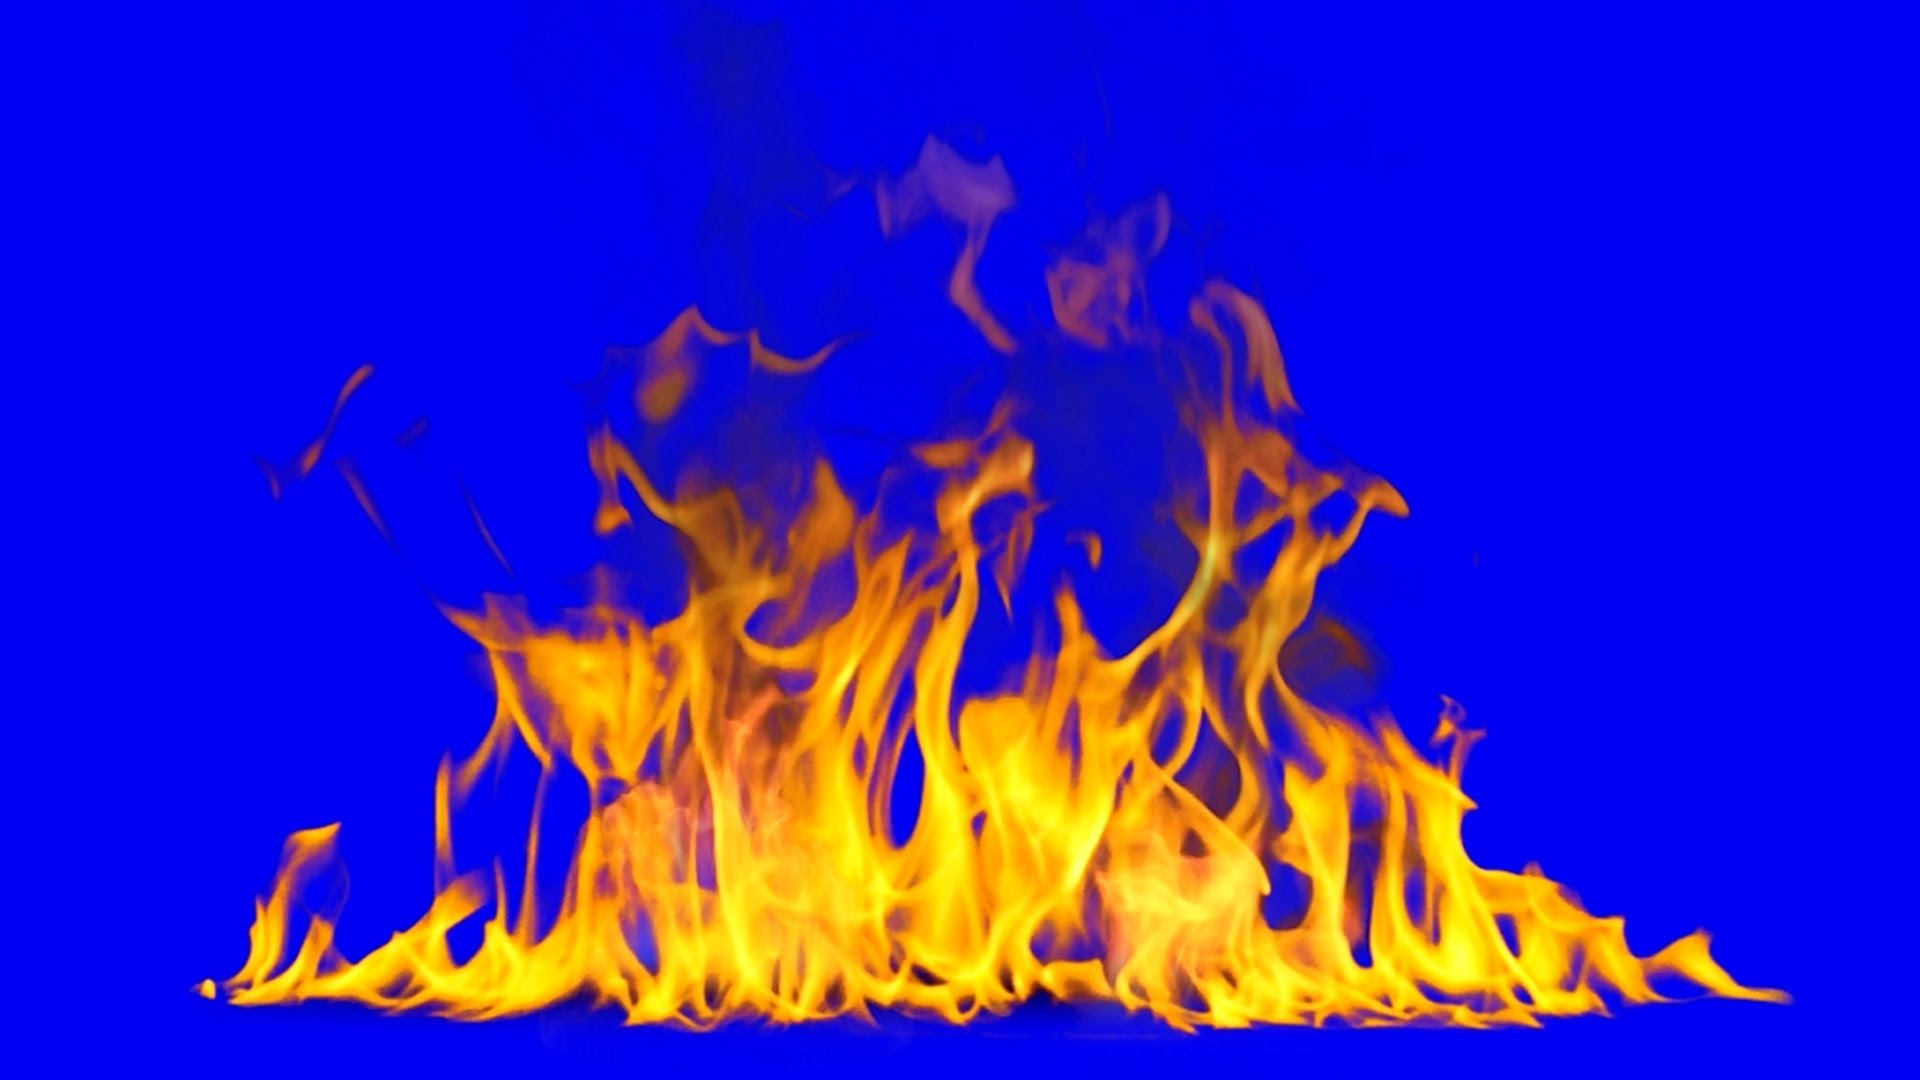 Fire & Flames Blue Screen - YouTube